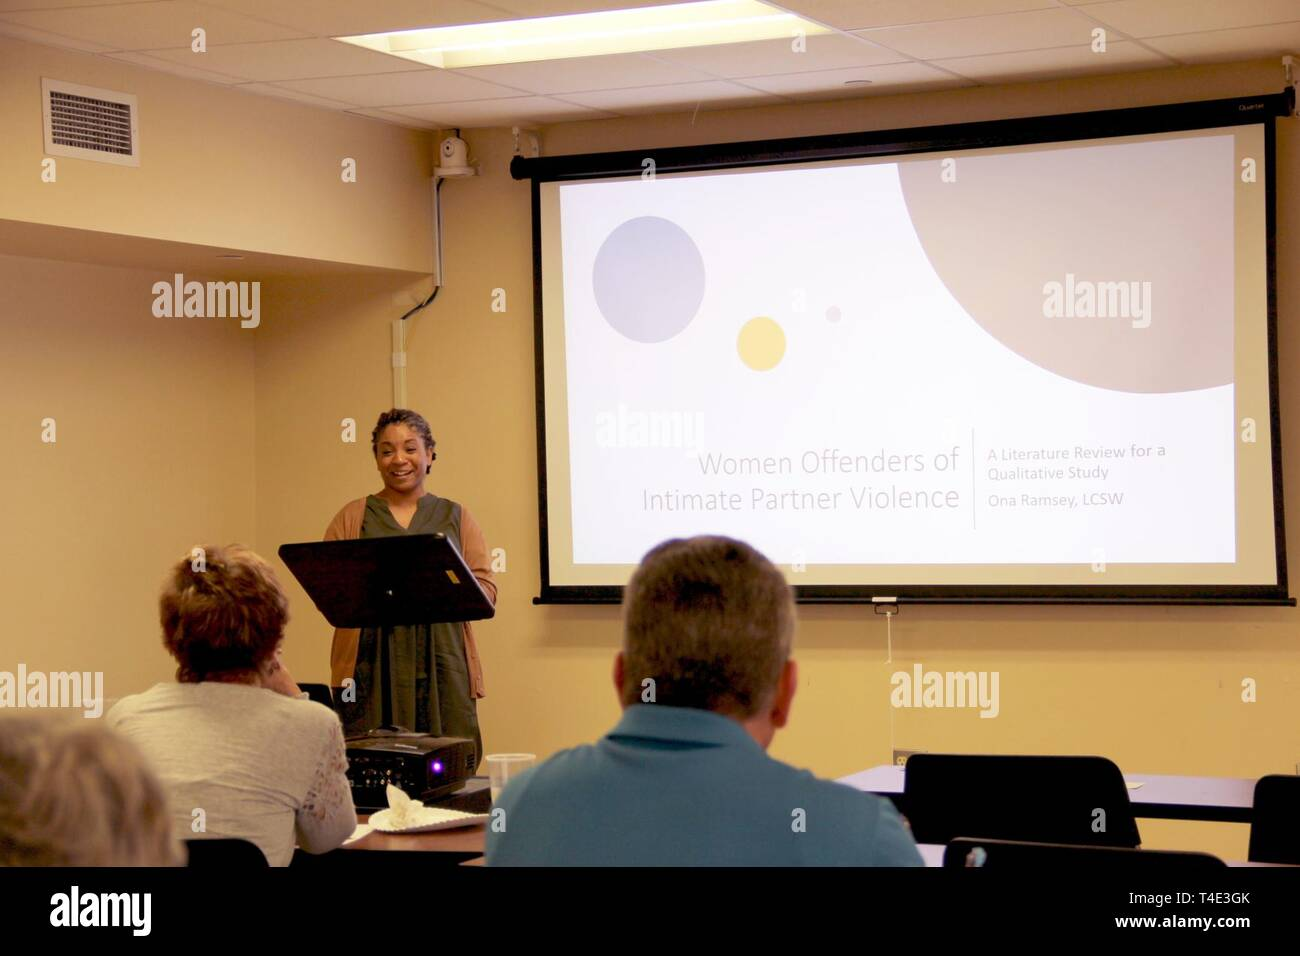 Ona Ramsey, licensed clinical social worker, William Beaumont Army Medical Center, presents her doctoral research on domestic violence and gender differences during a National Professional Social Work Month forum organized by WBAMC social workers and mental health professionals, March 21, at the Fort Bliss Army Community Service Family Resiliency Center. - Stock Image